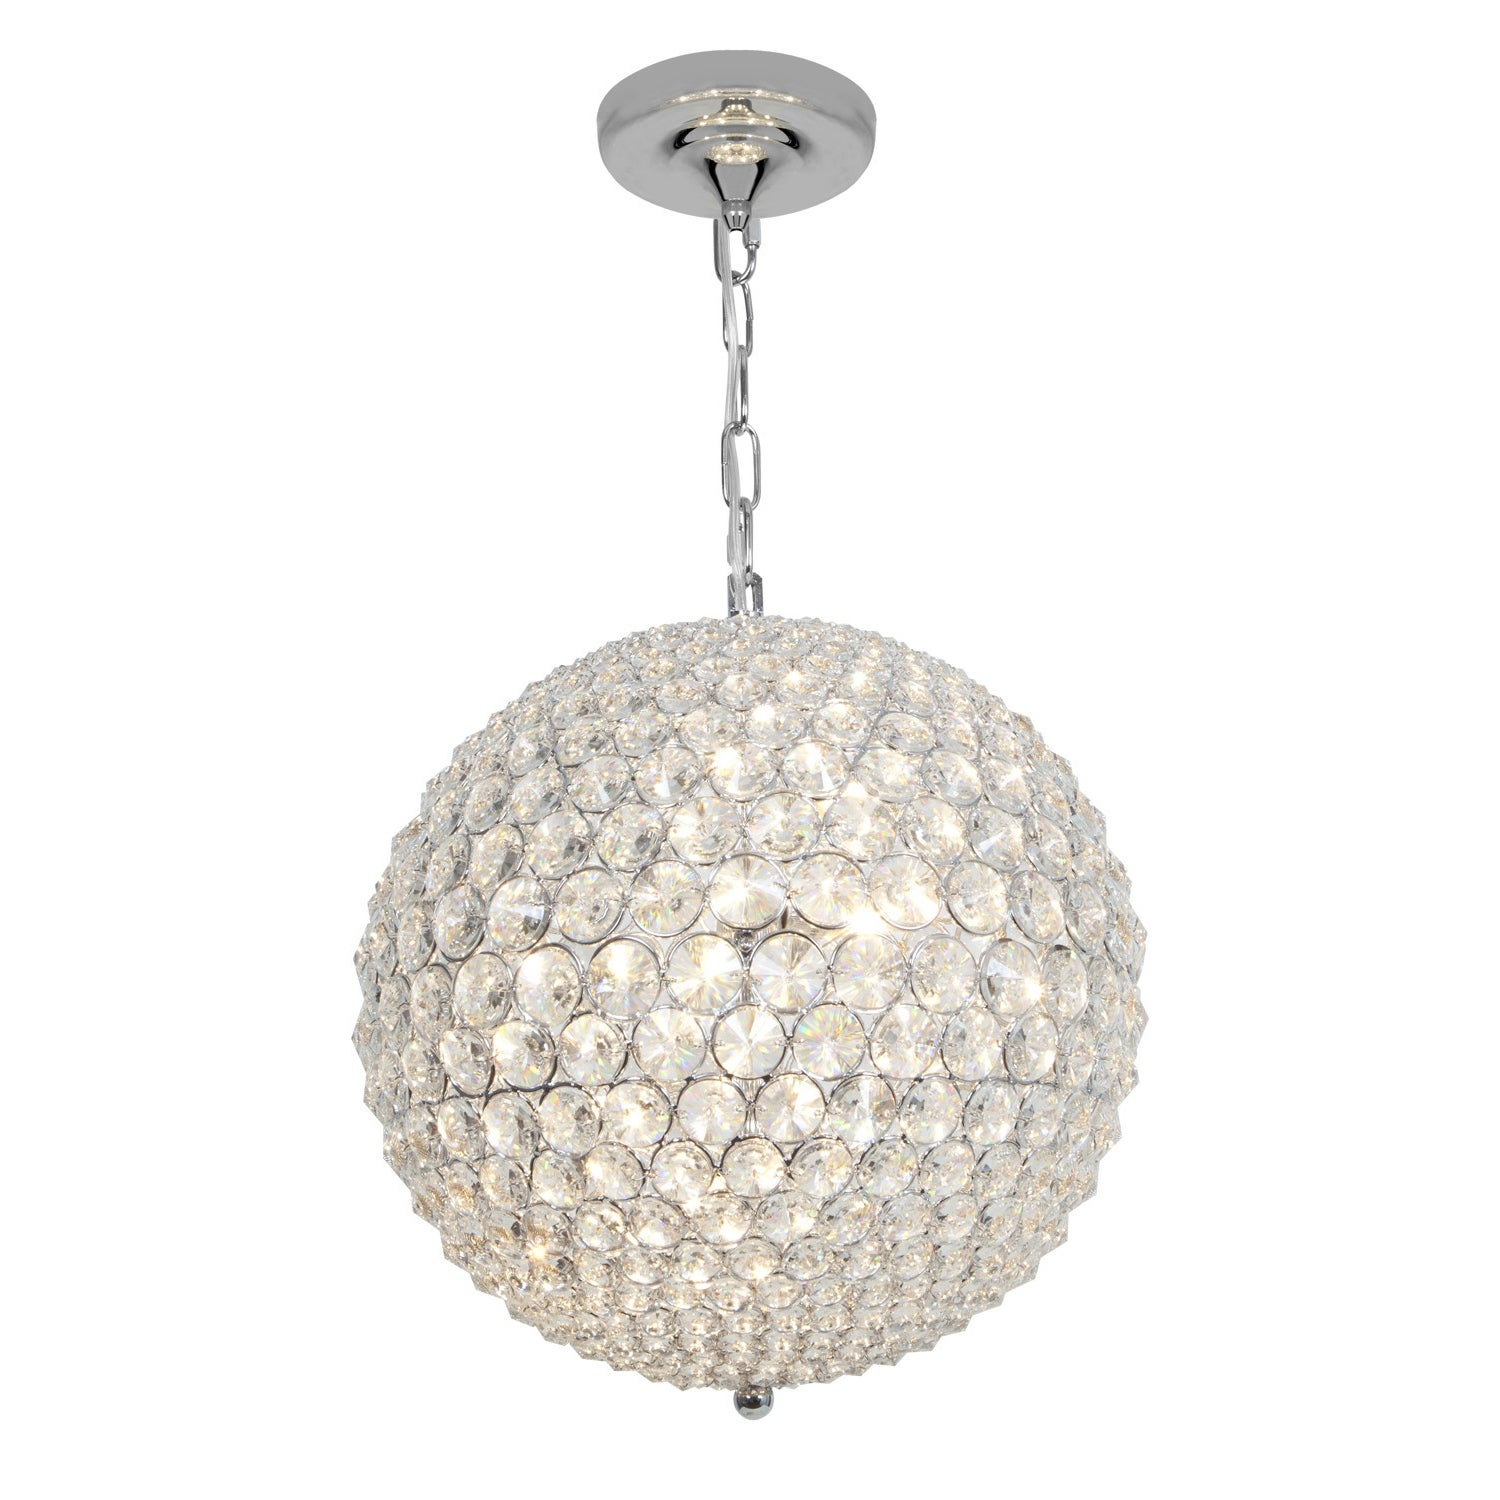 Access Kristal 5-light Chrome Ball Pendant